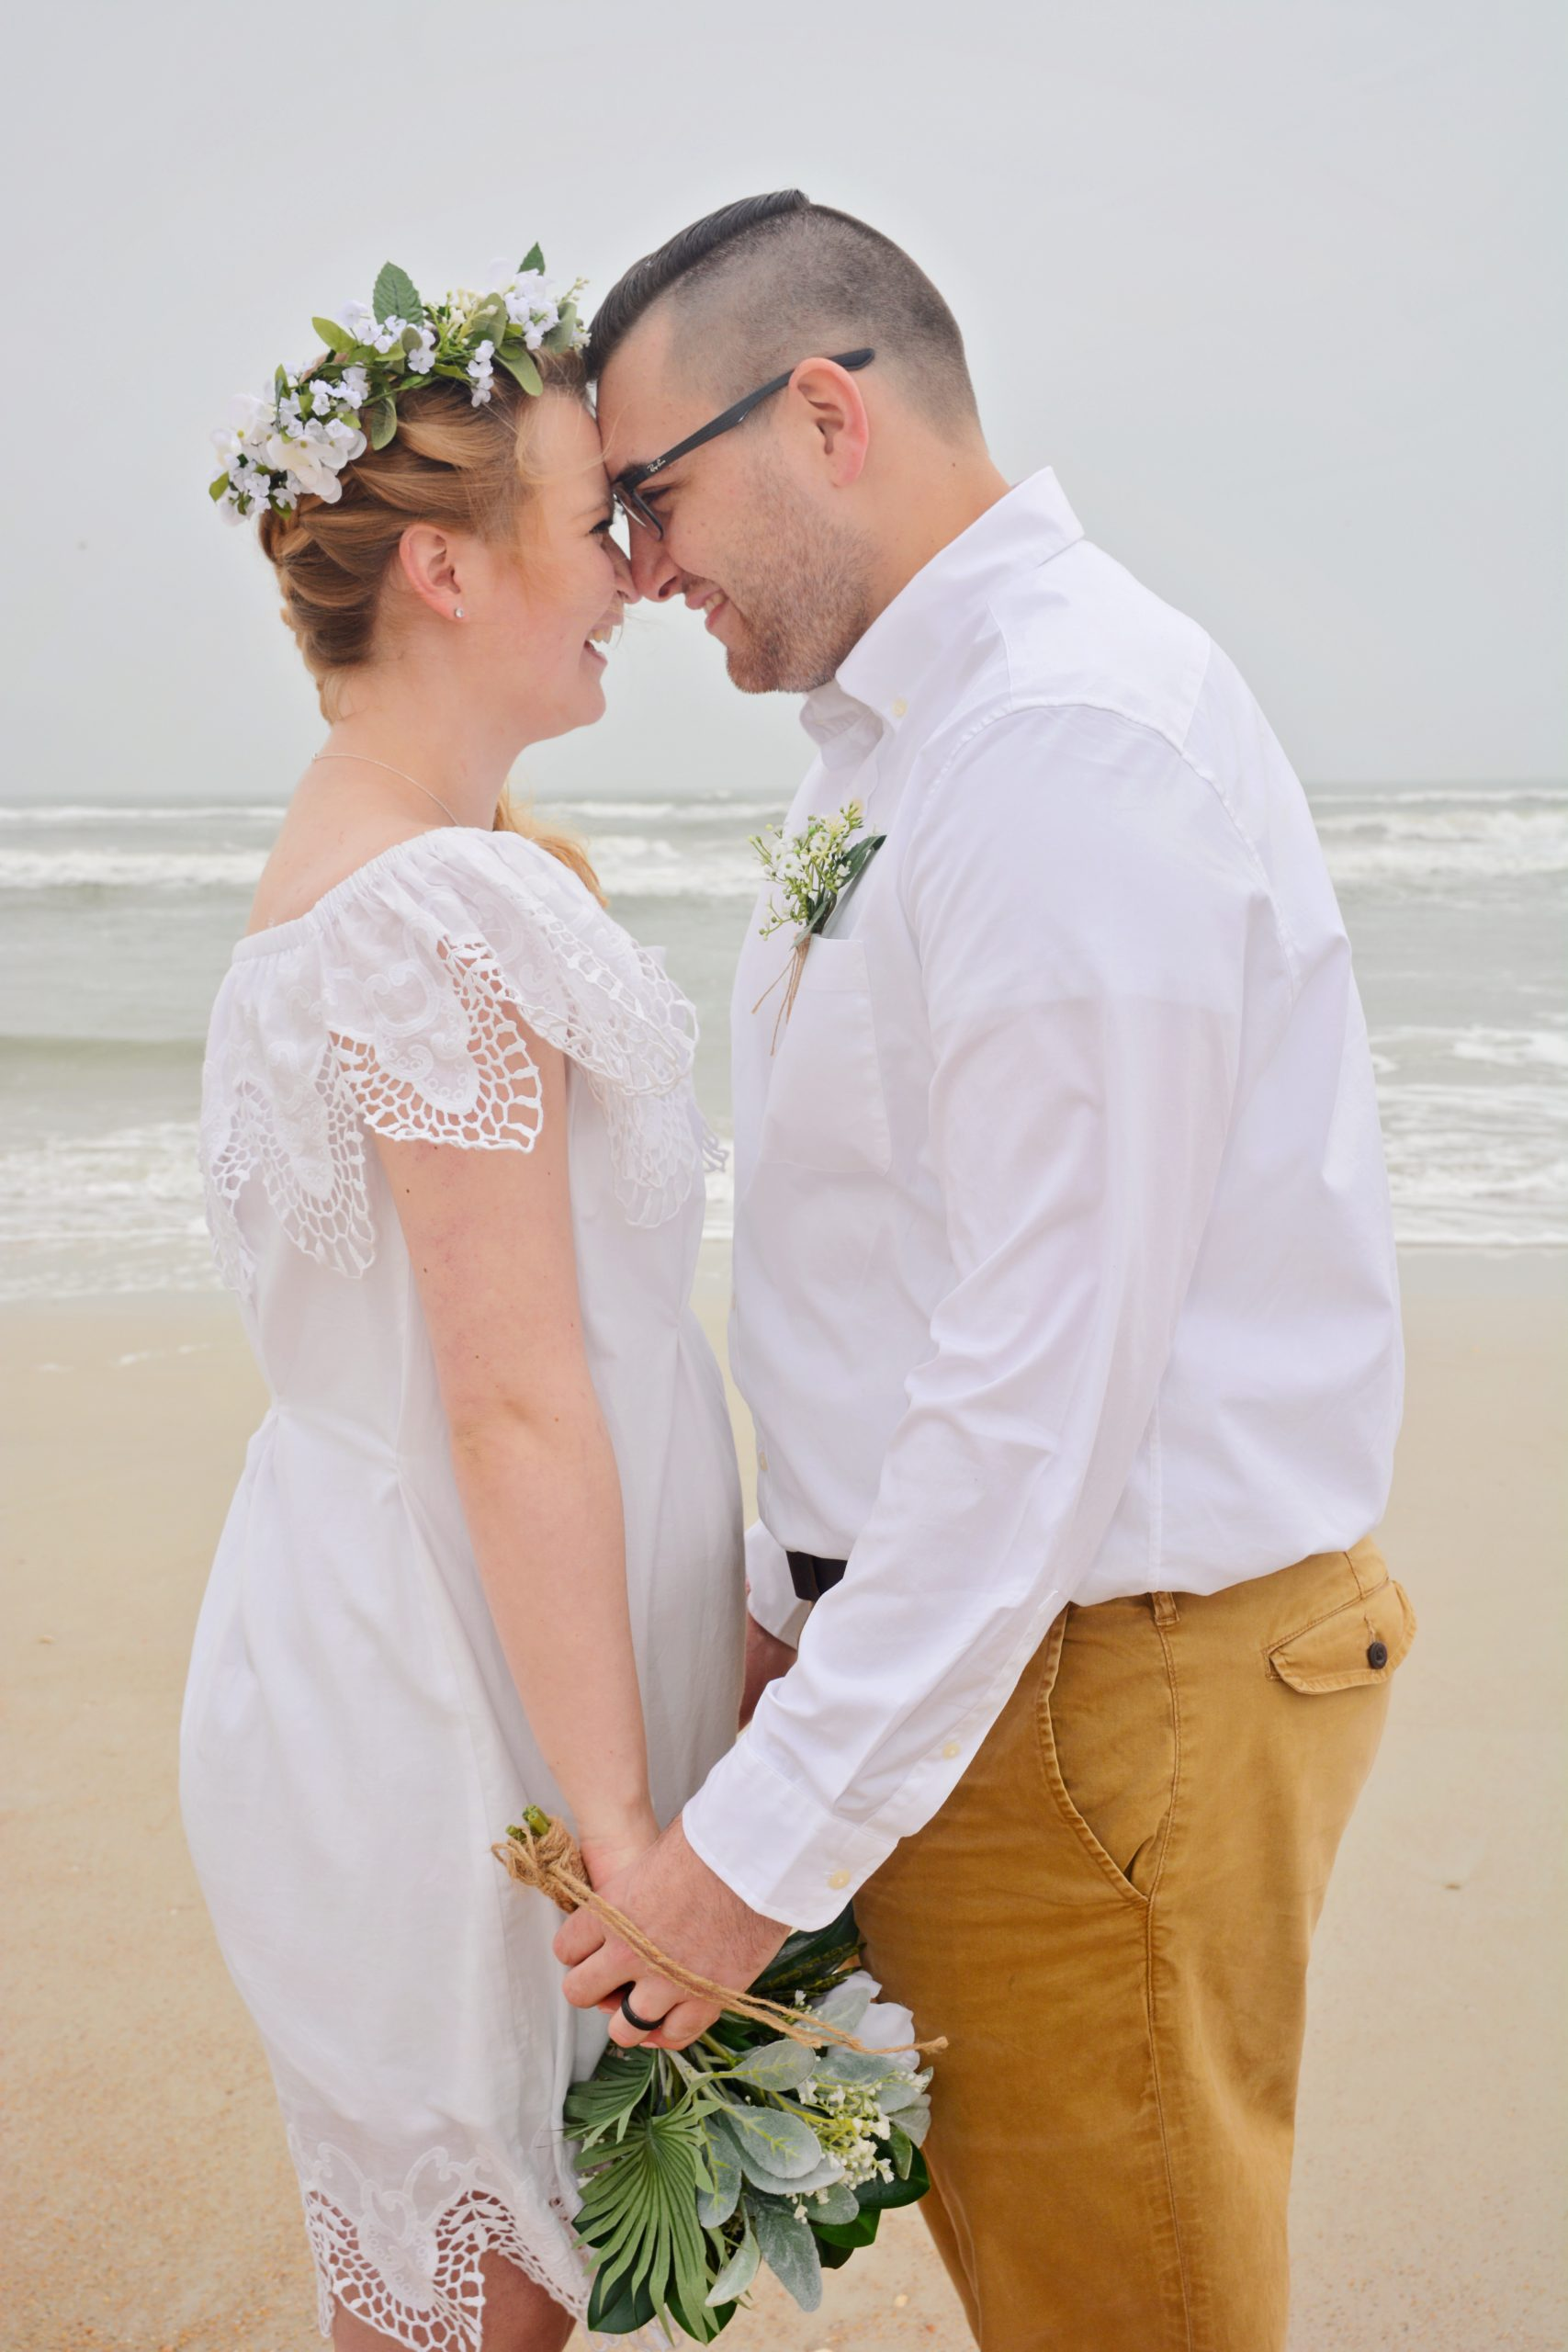 Wedding couple married at Anastasia State Park, Florida